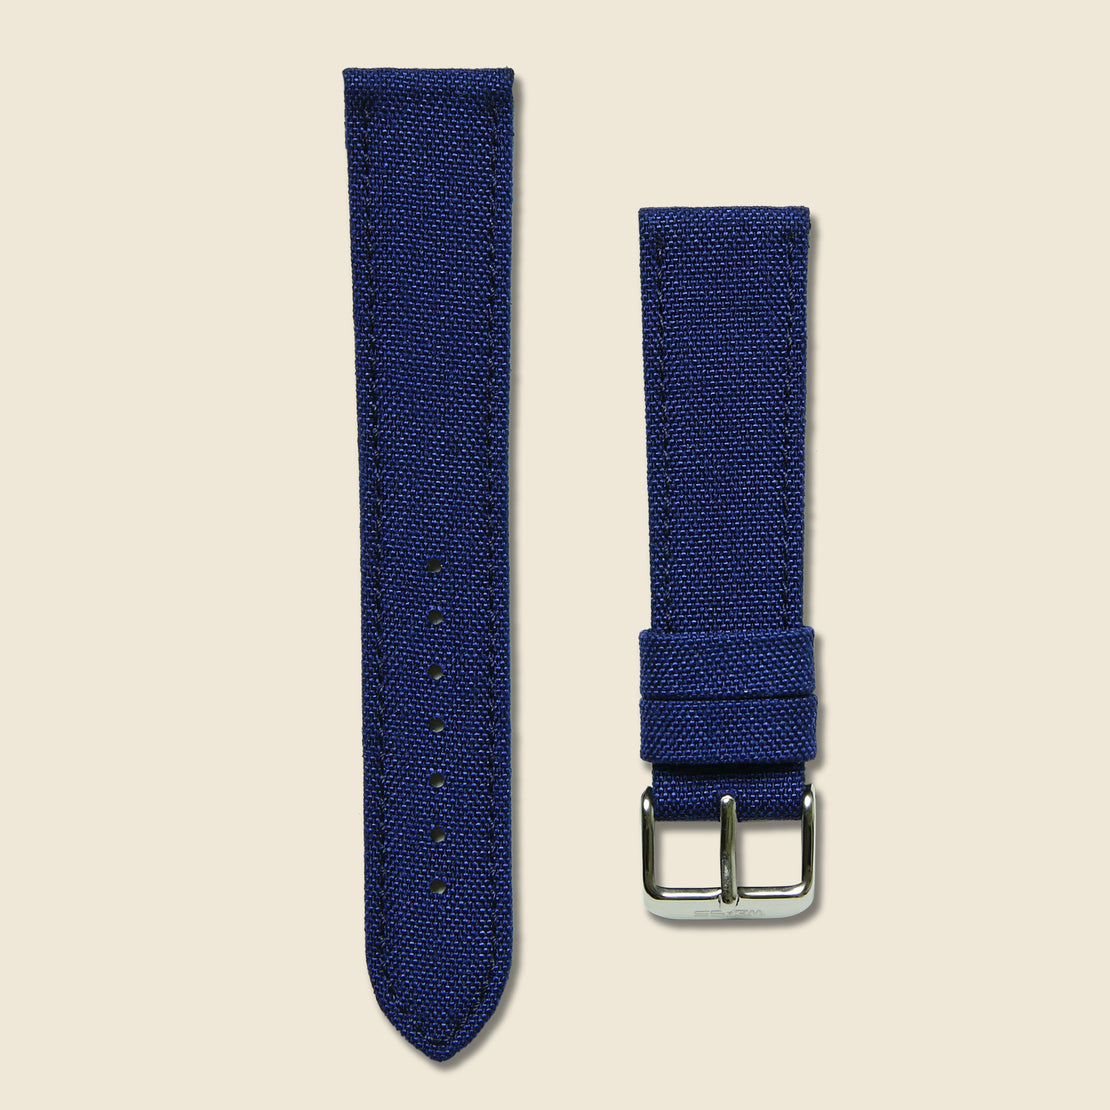 Weiss Watch Co Canvas Watch Band - Navy